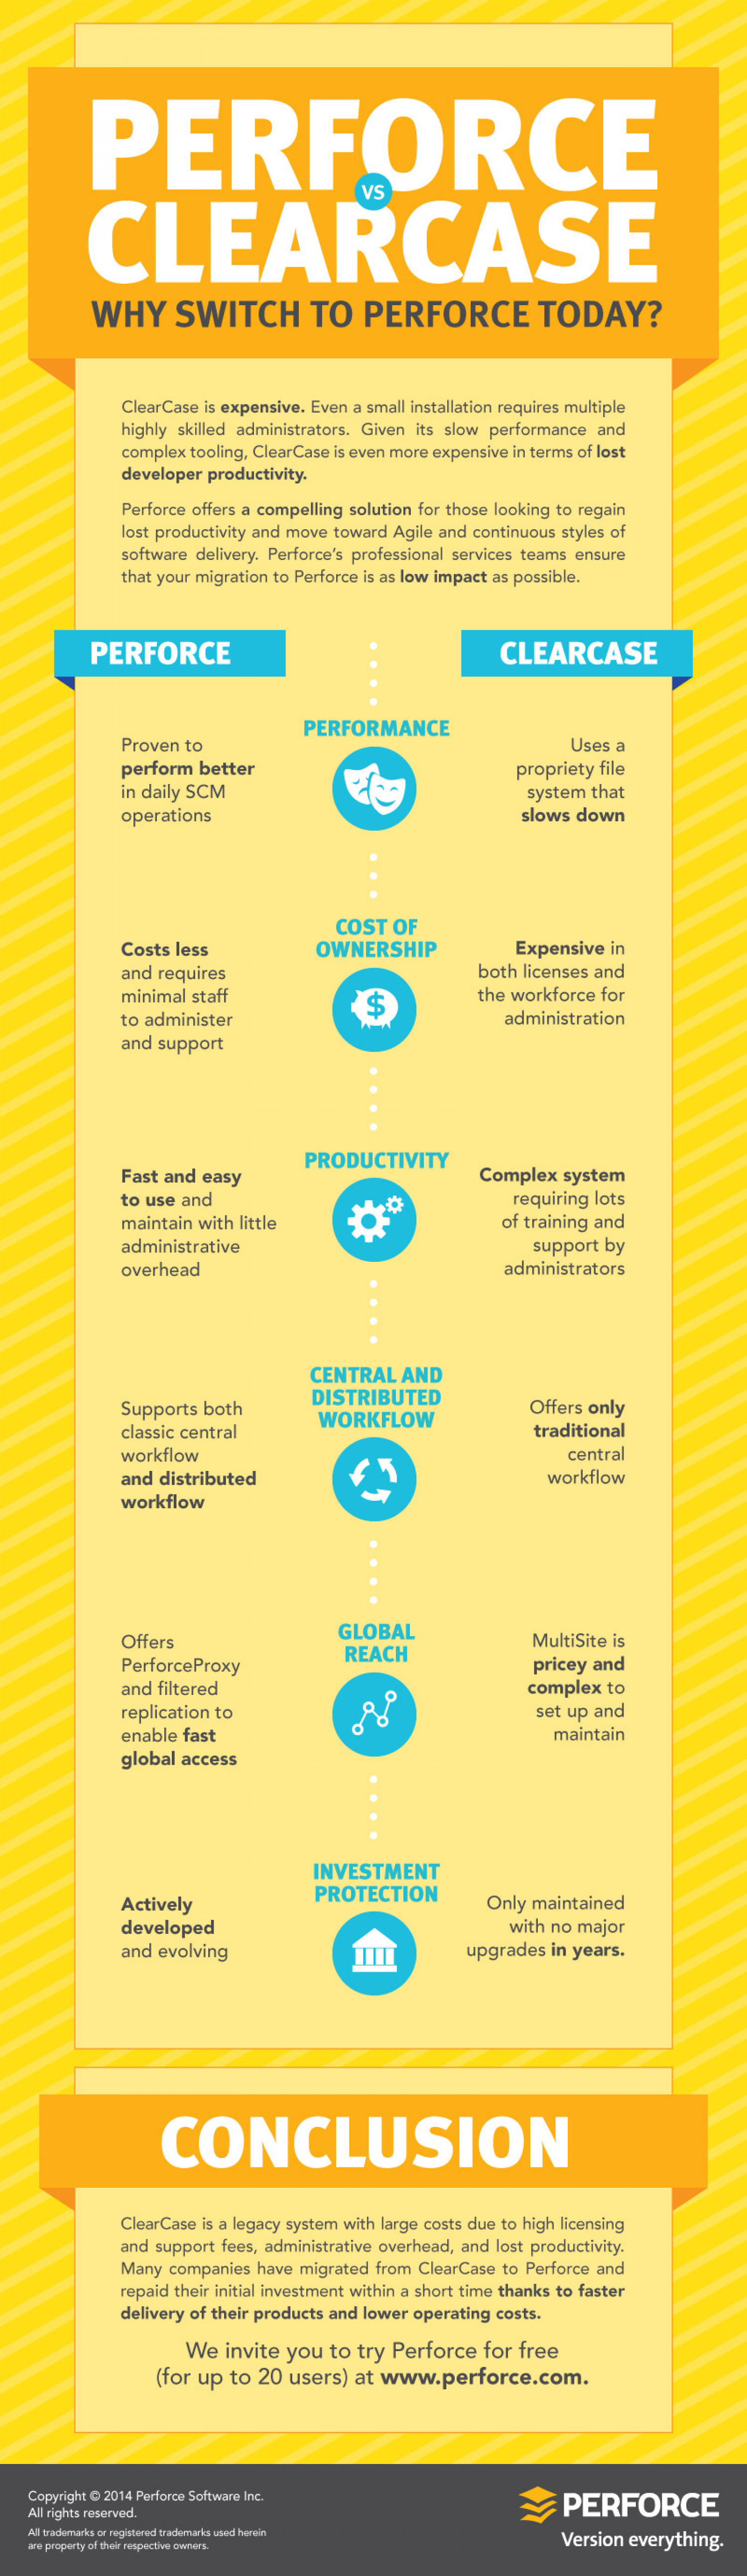 Perforce vs Clearcase Infographic